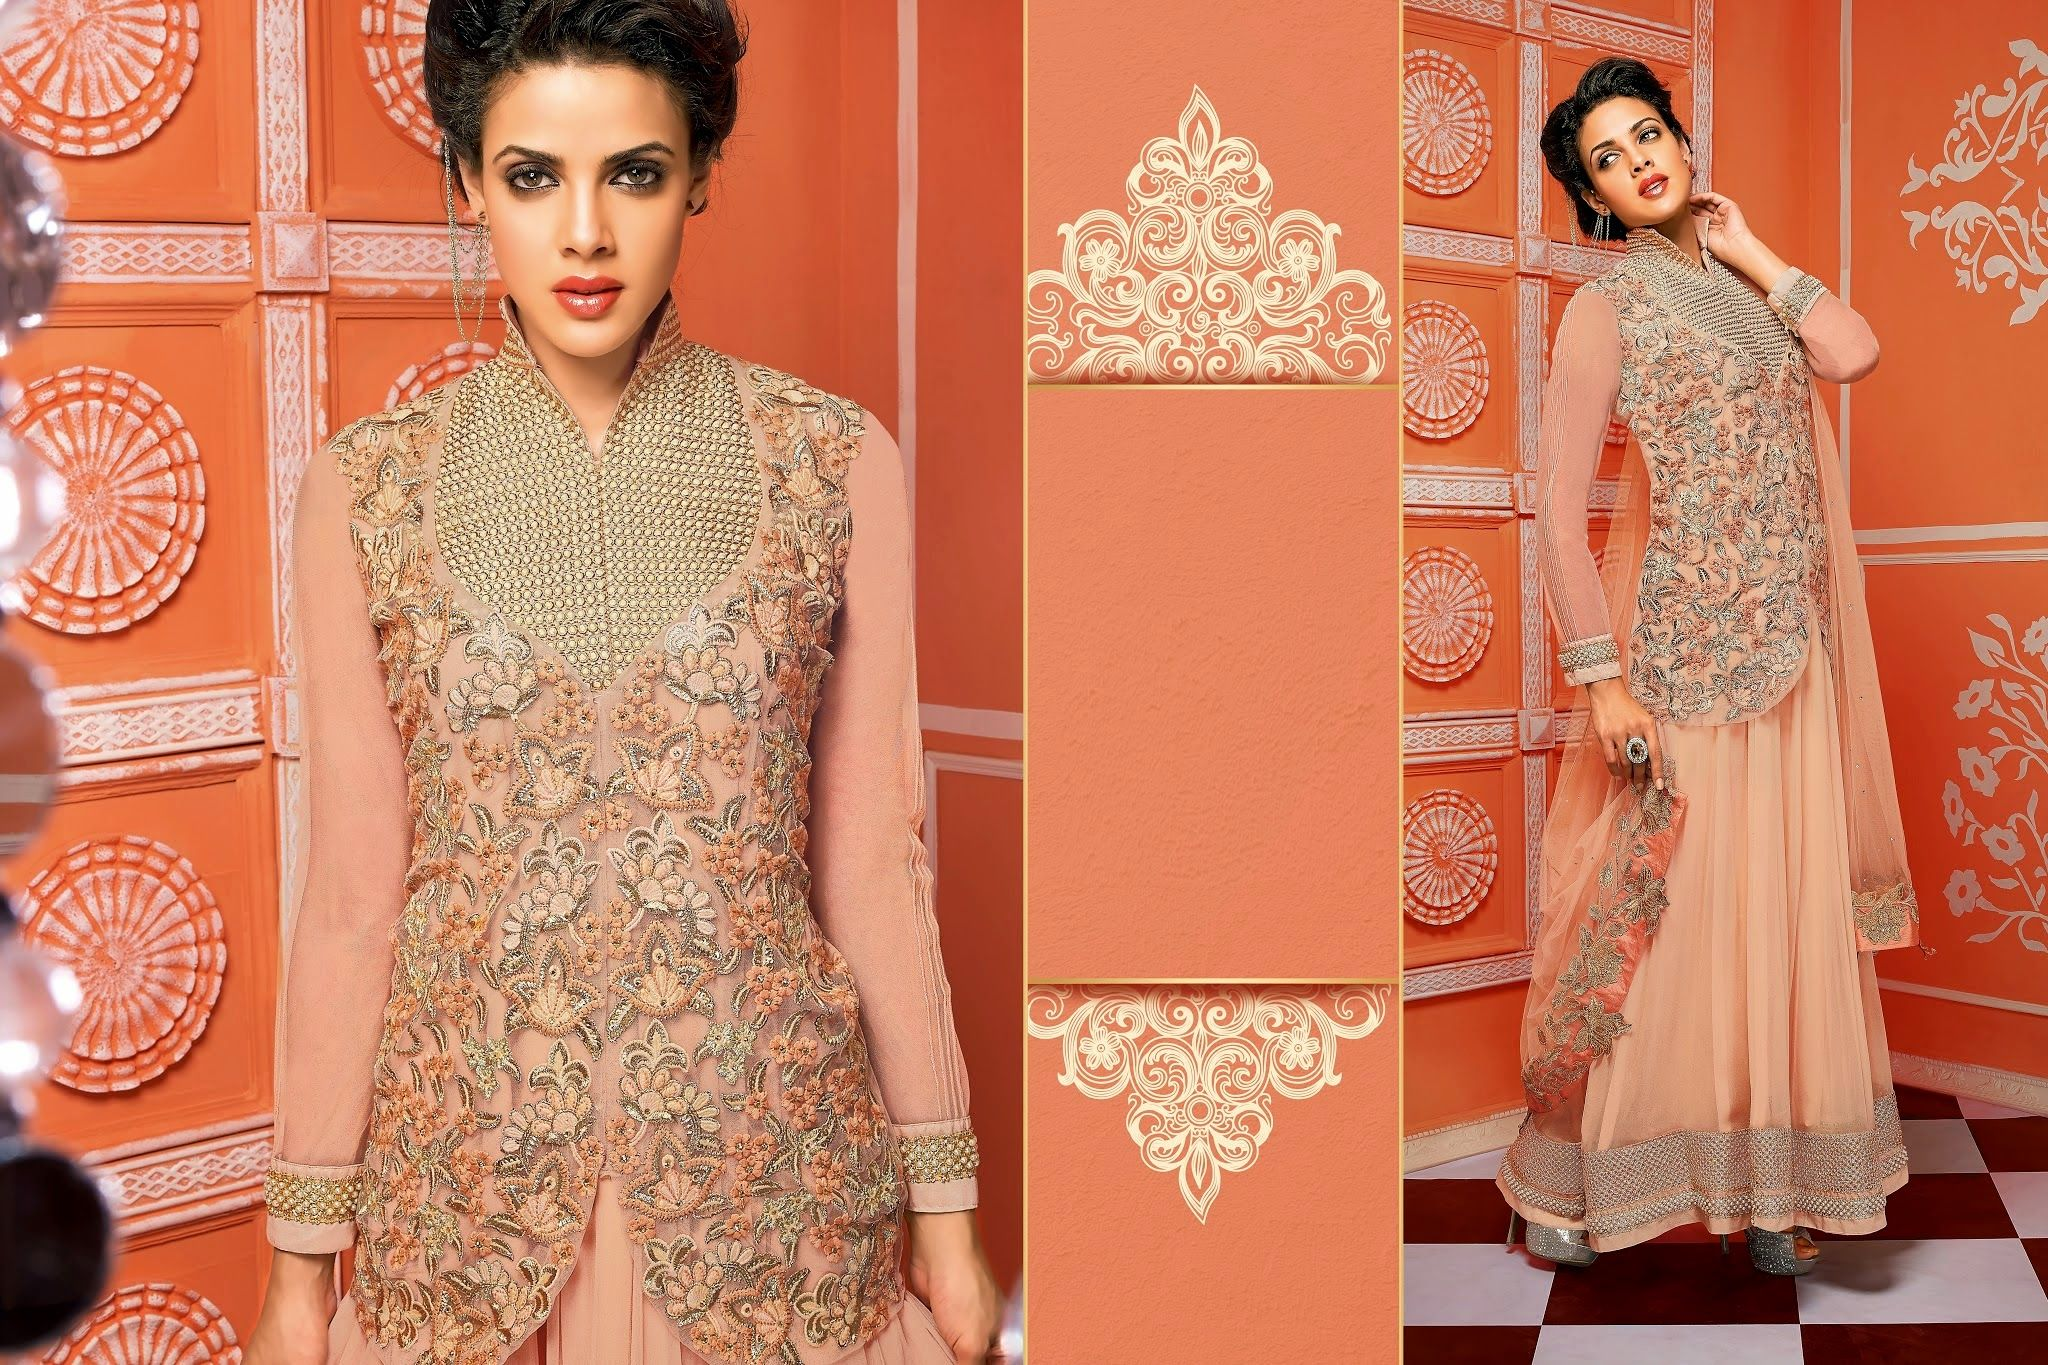 Dazzling heavy amazing girly long stylish peach anarkalisuit